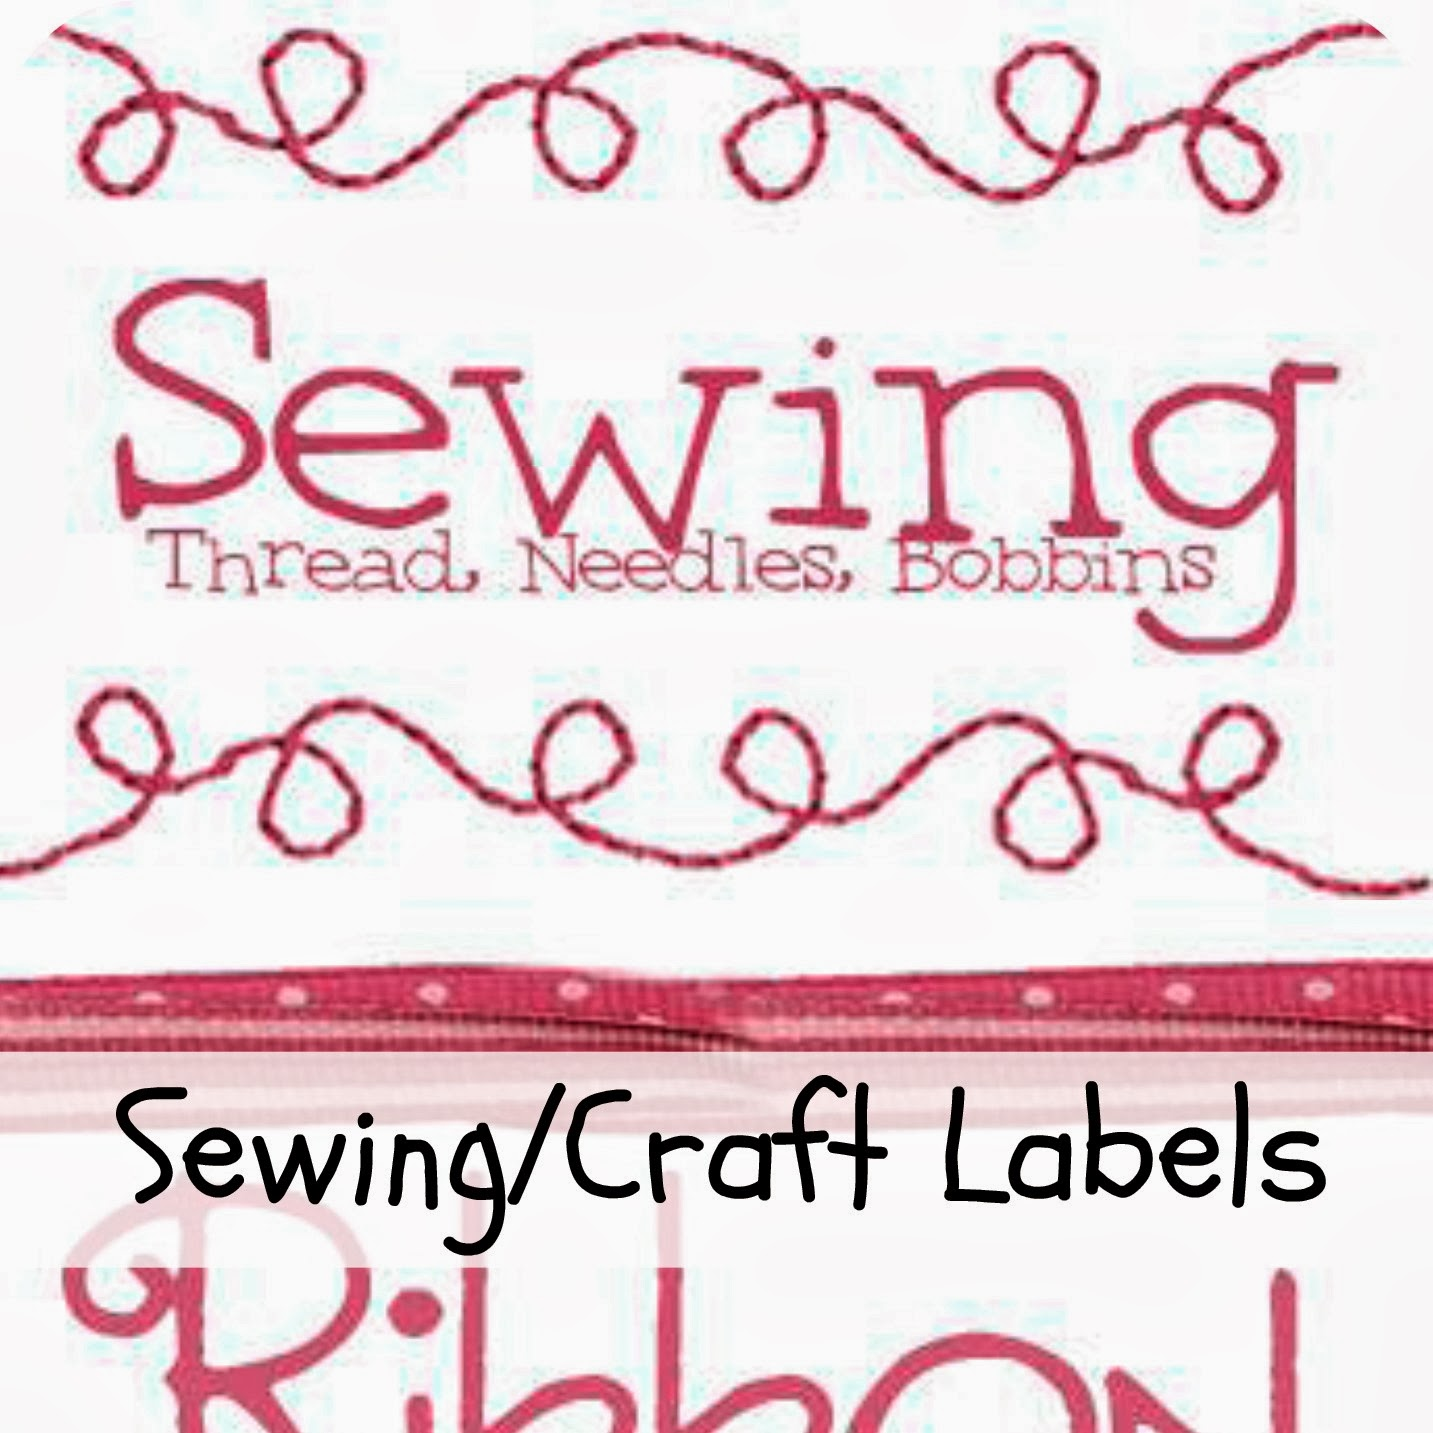 Sewing and Craft Labels